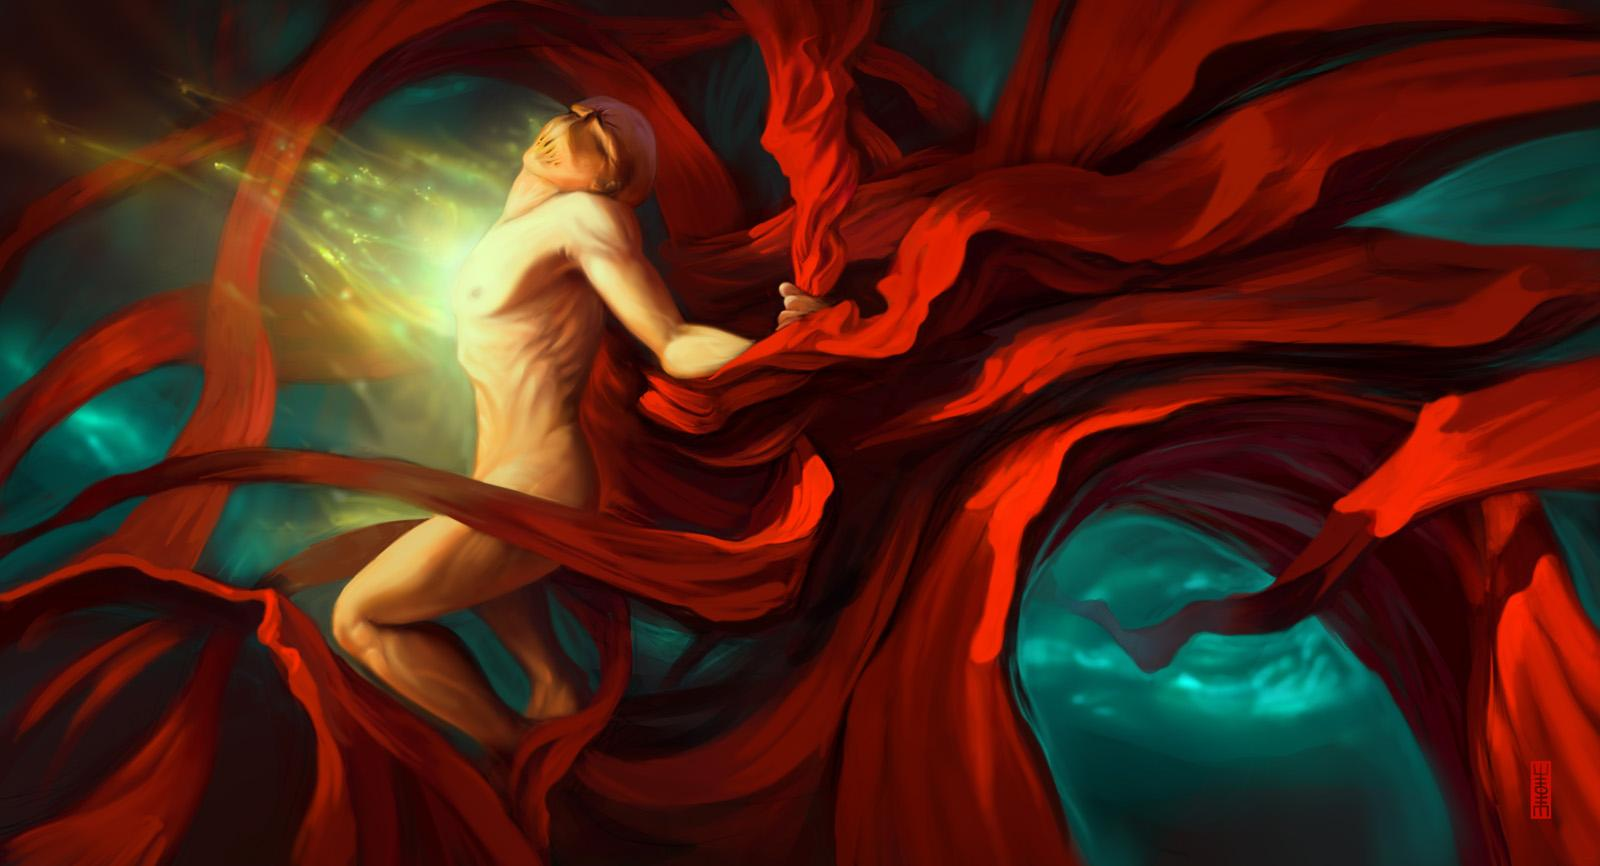 scary_dream_repainted_by_rhads-d31q1x2.jpg (1600×866)